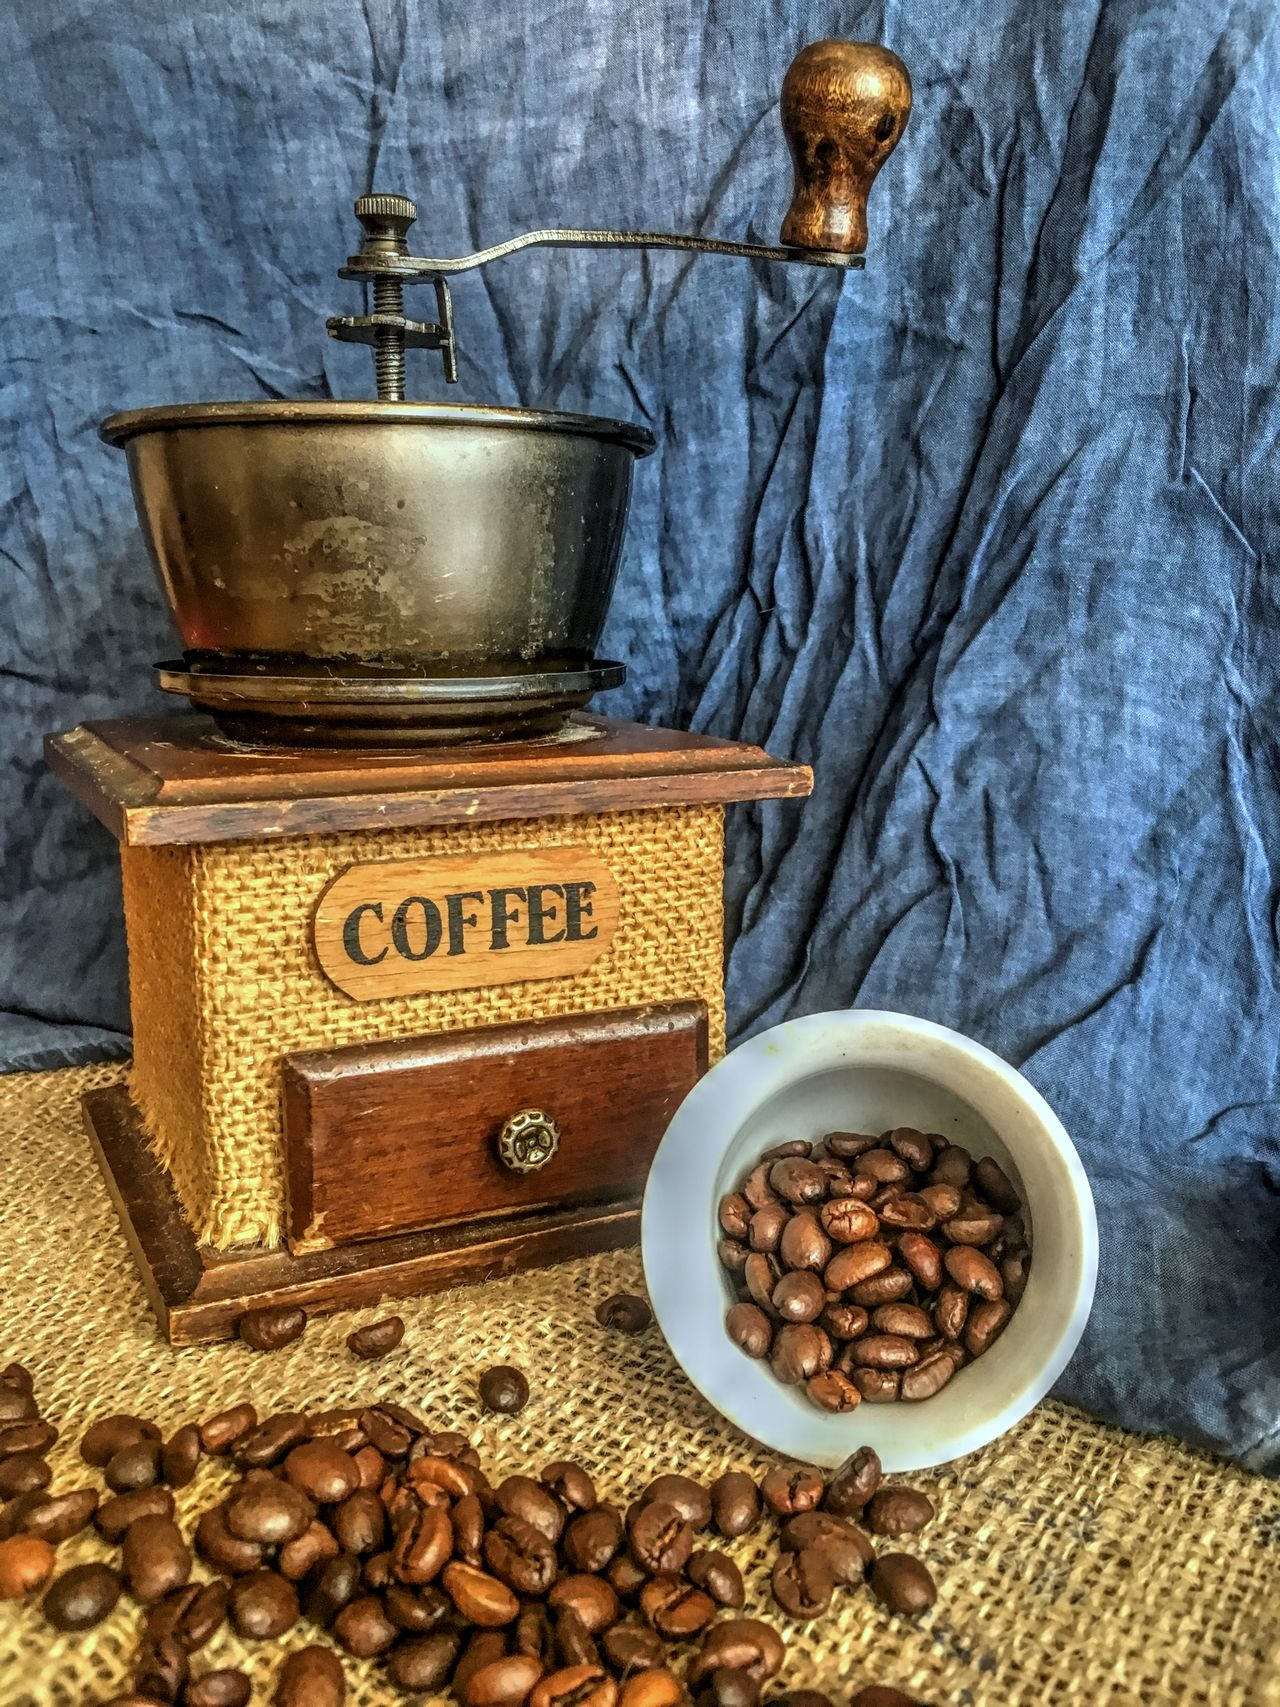 Close-up Coffee - Drink Food And Drink Grinder Indoors  Old Coffee Grinder Relaxing Moments Table Wooden Coffe Grinder